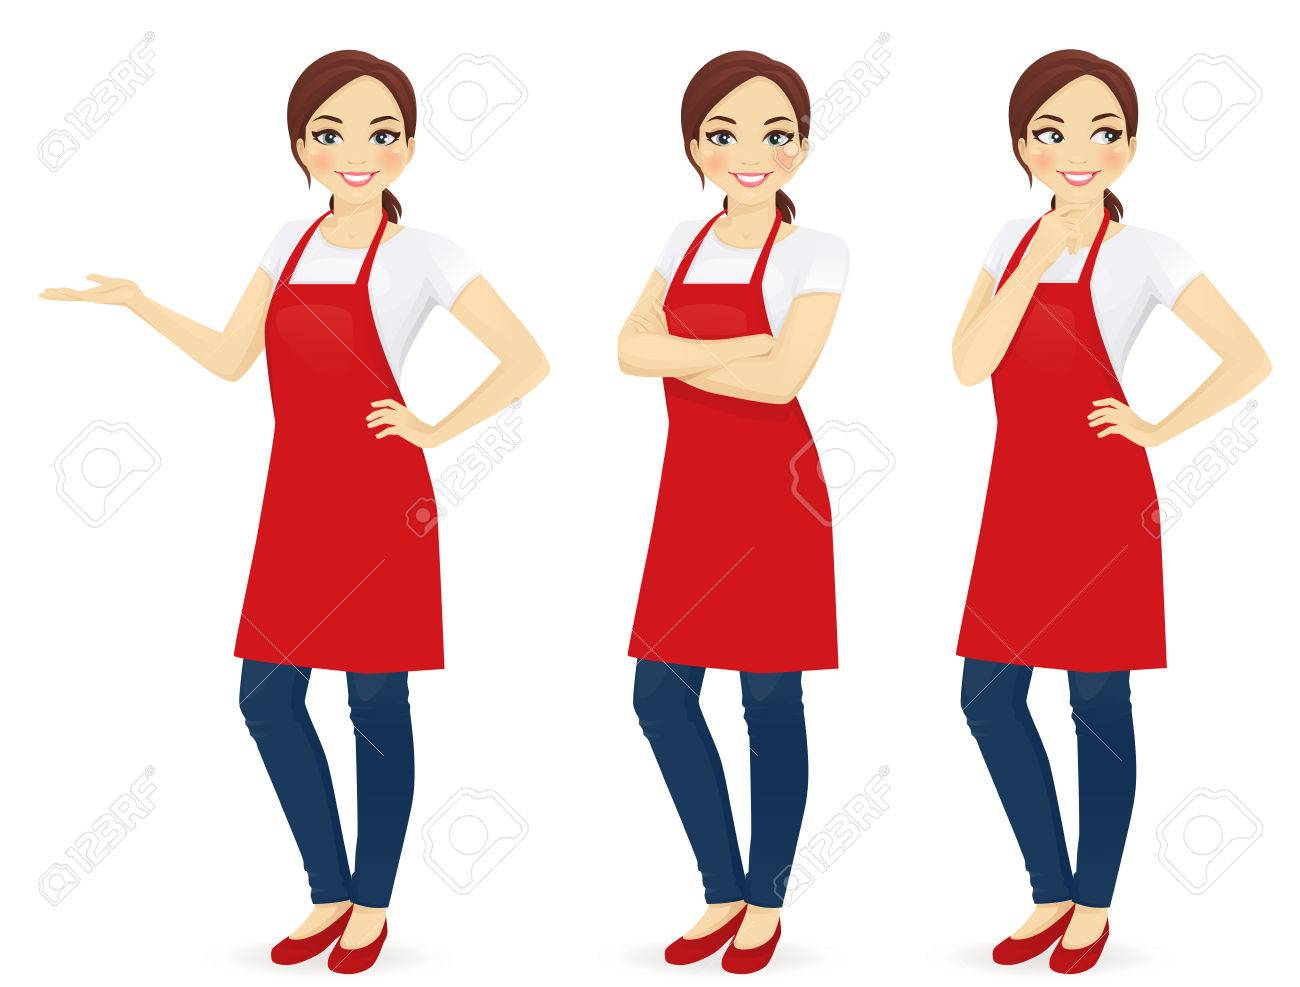 Beautiful woman in red upron standing in different poses isolated - 66438311